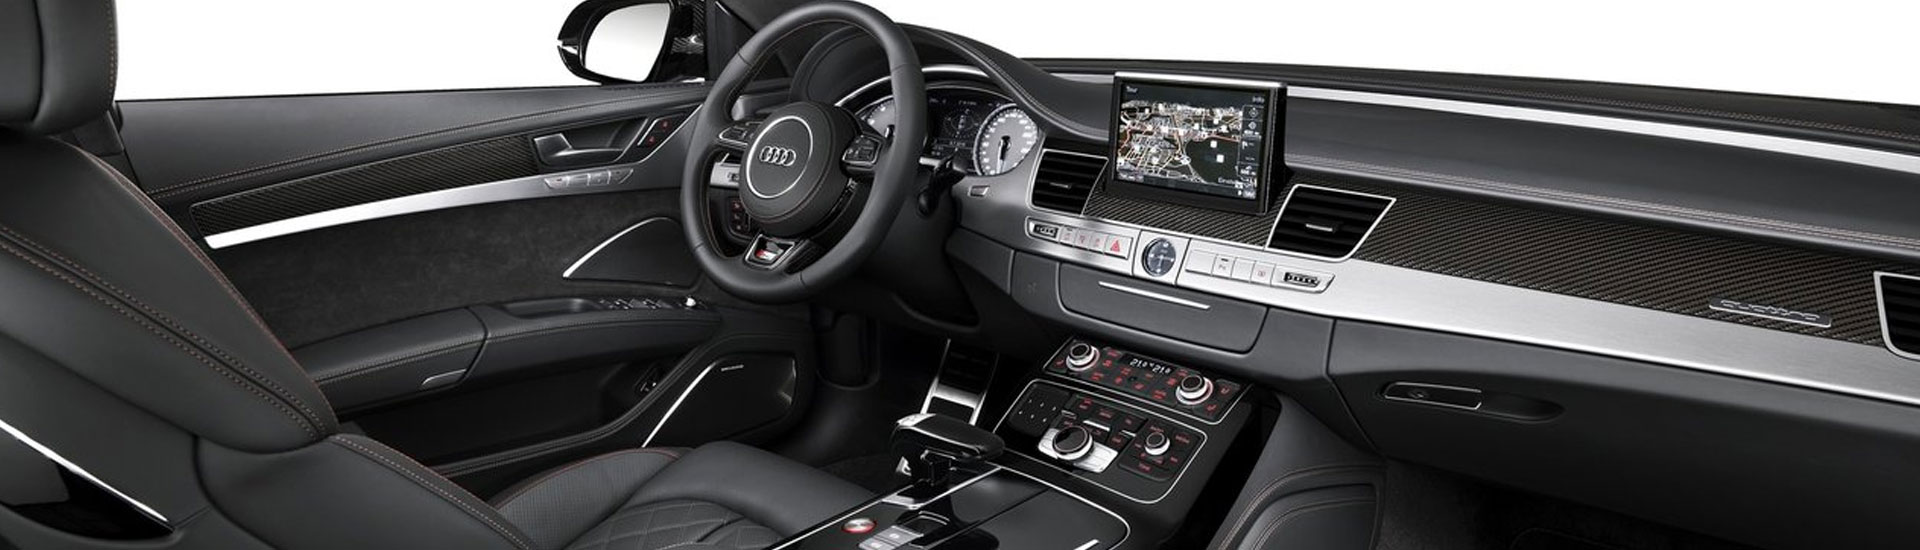 2014 Audi S5 Custom Dash Kits